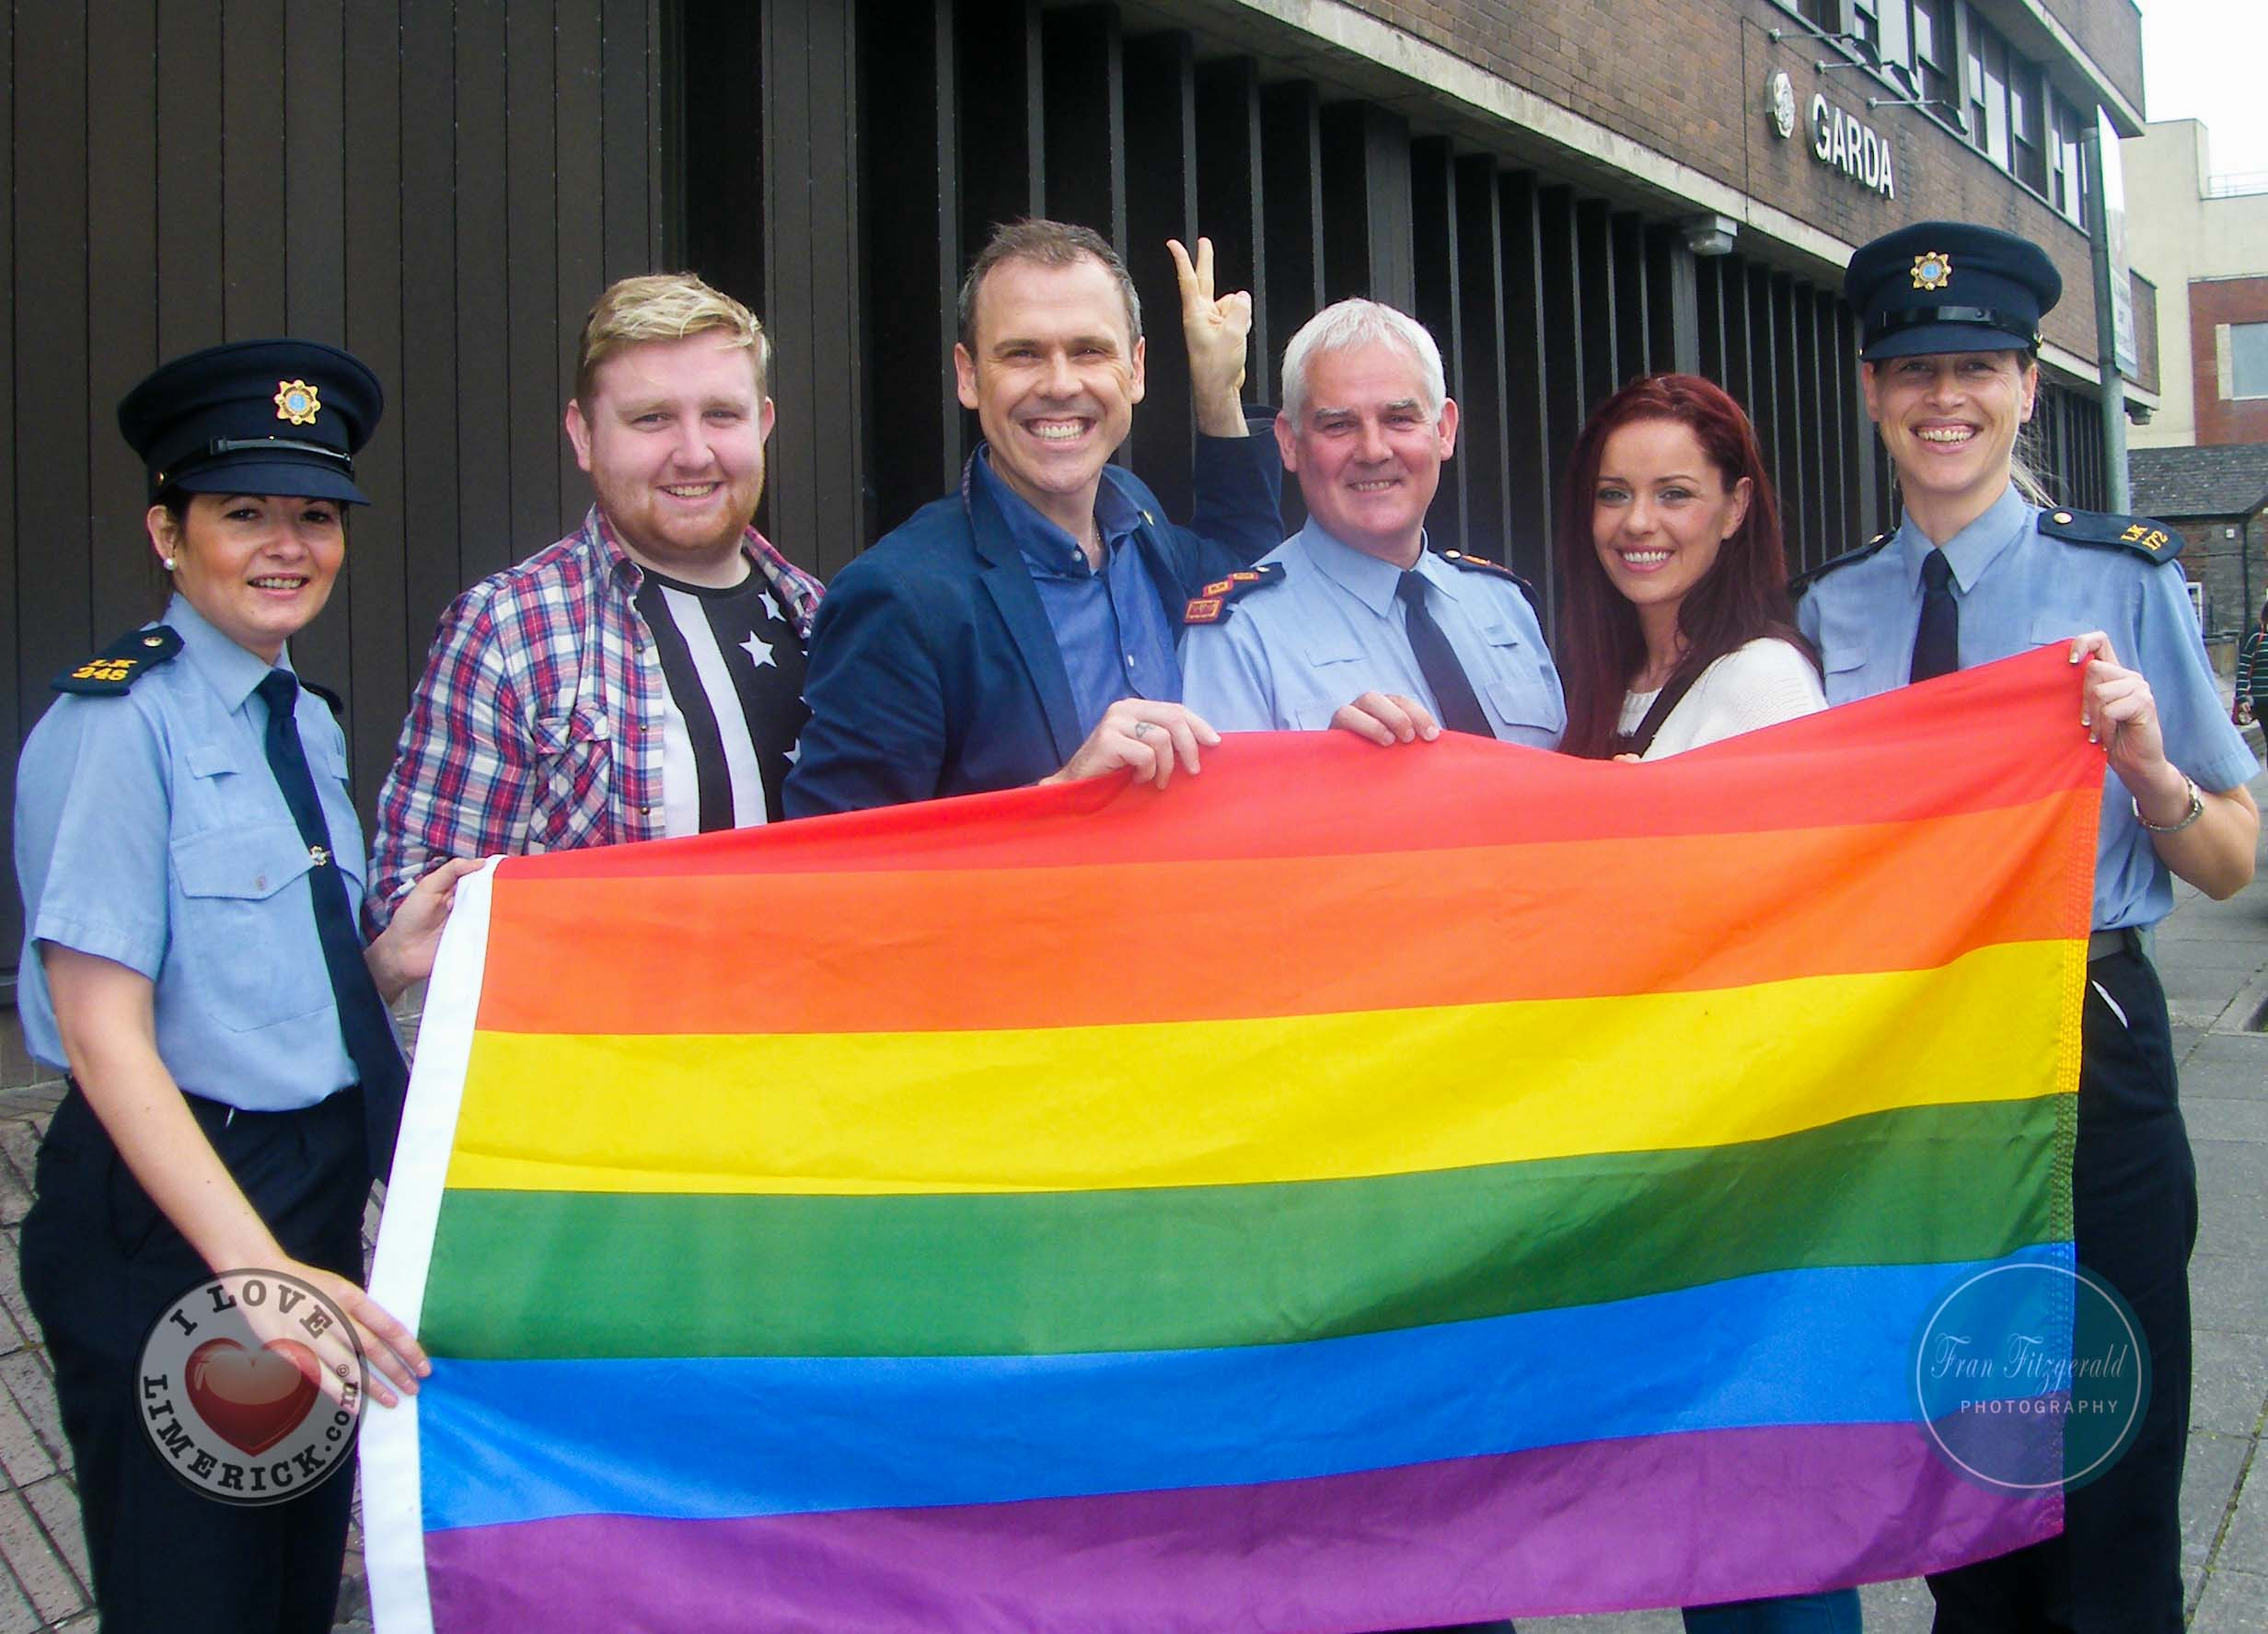 Limerick Garda station flies pride flag for equality